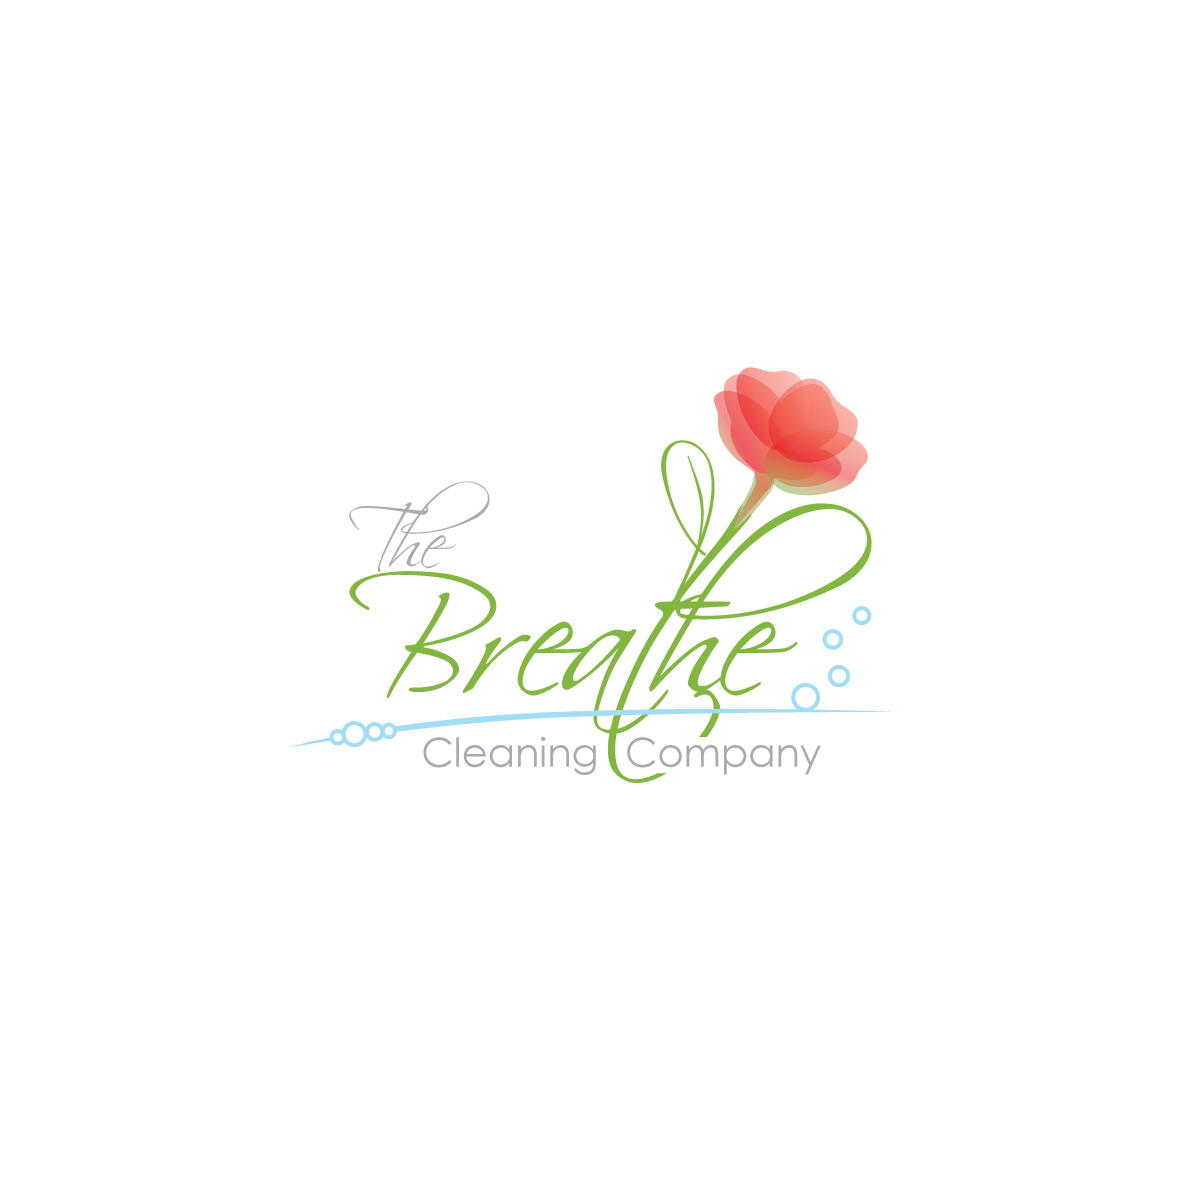 Logo The Breathe Cleaning Company realizacje Realizacje the breathe cleaning company logo